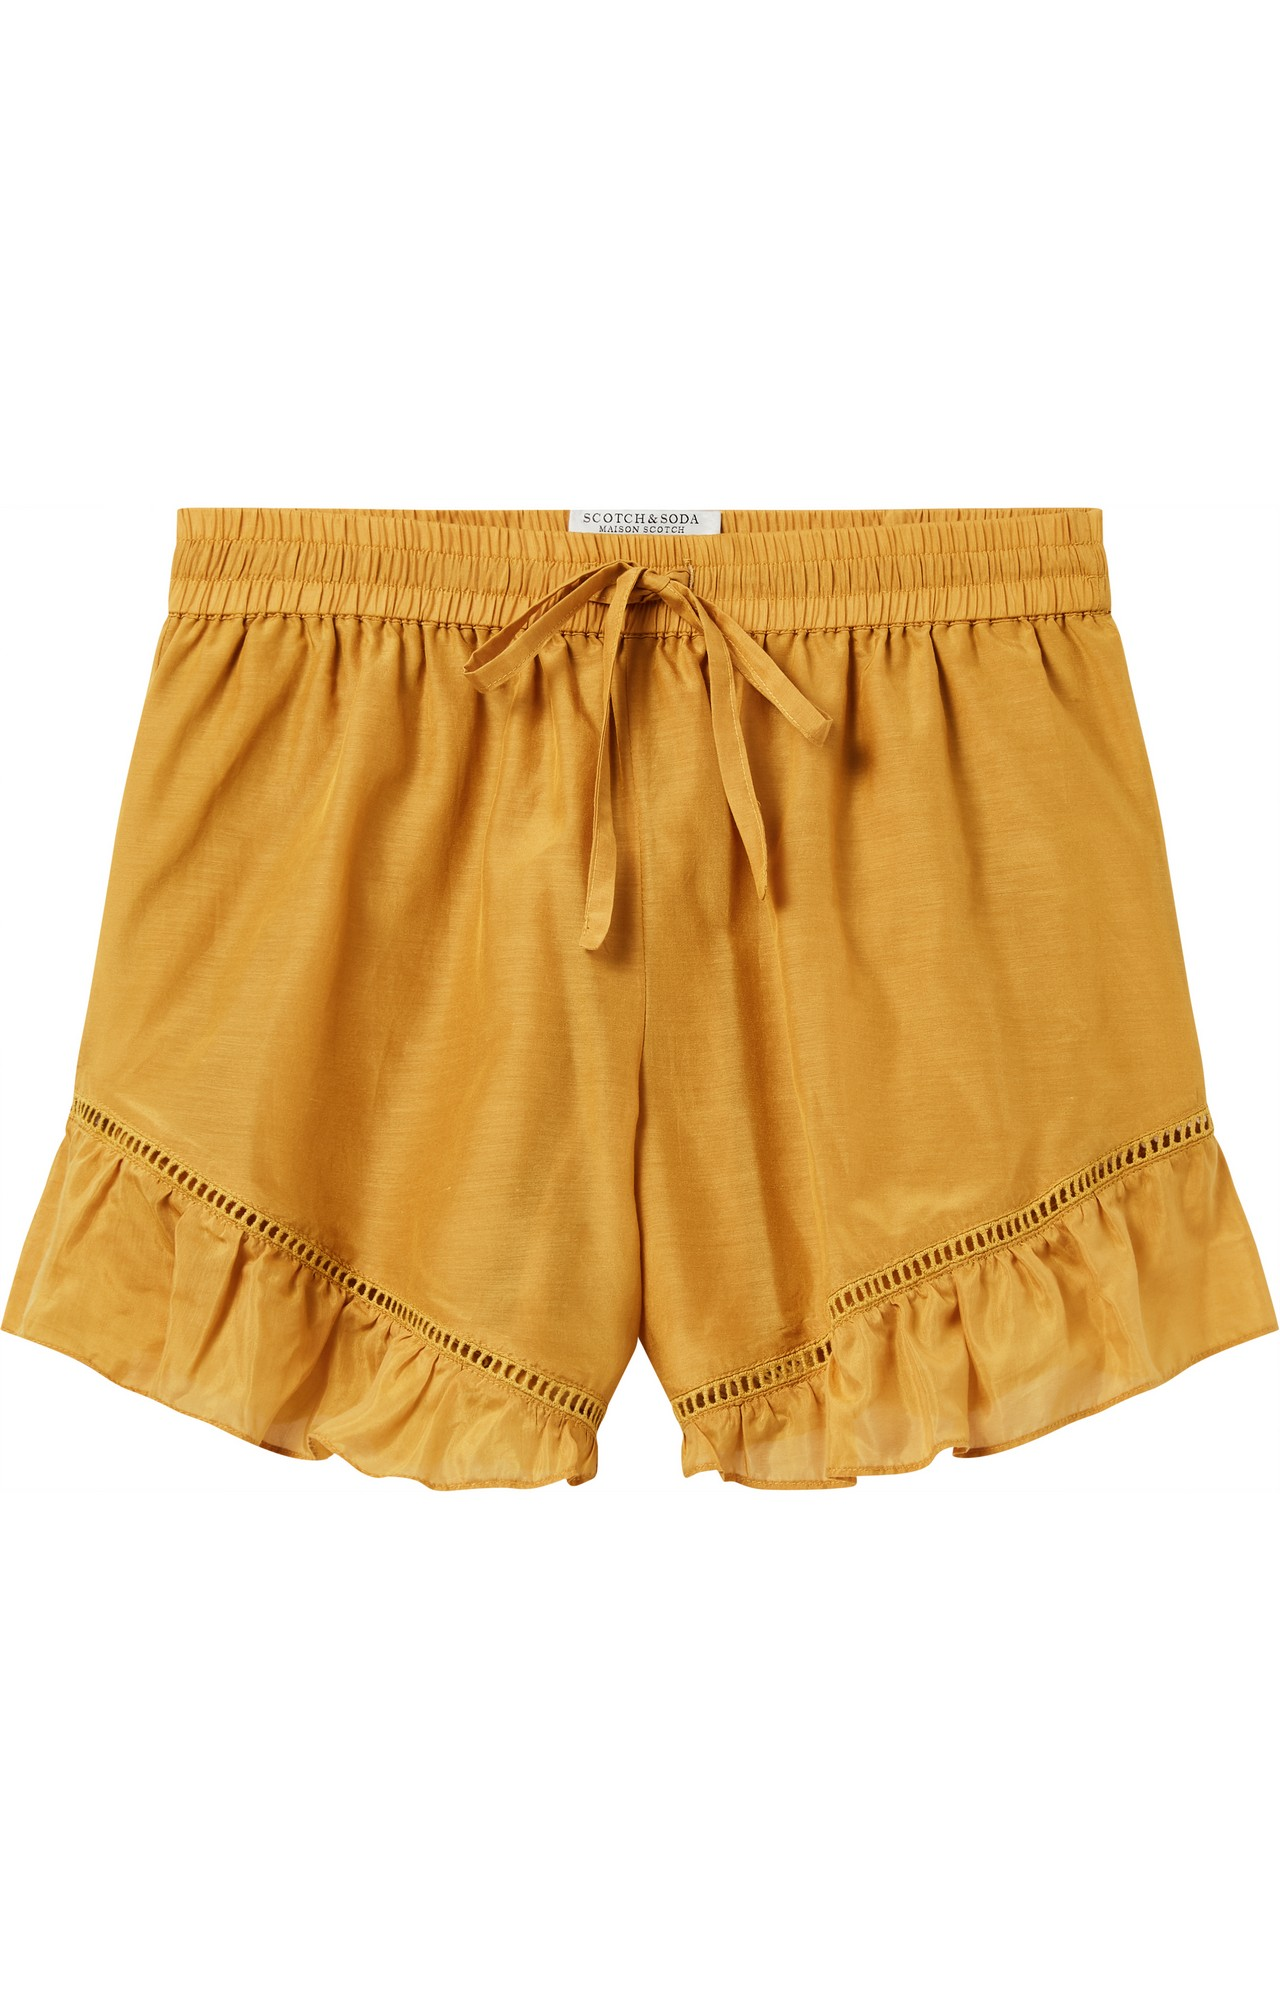 Scotch & Soda   COTTON SILK SHORTS WITH LADDER AND LACE